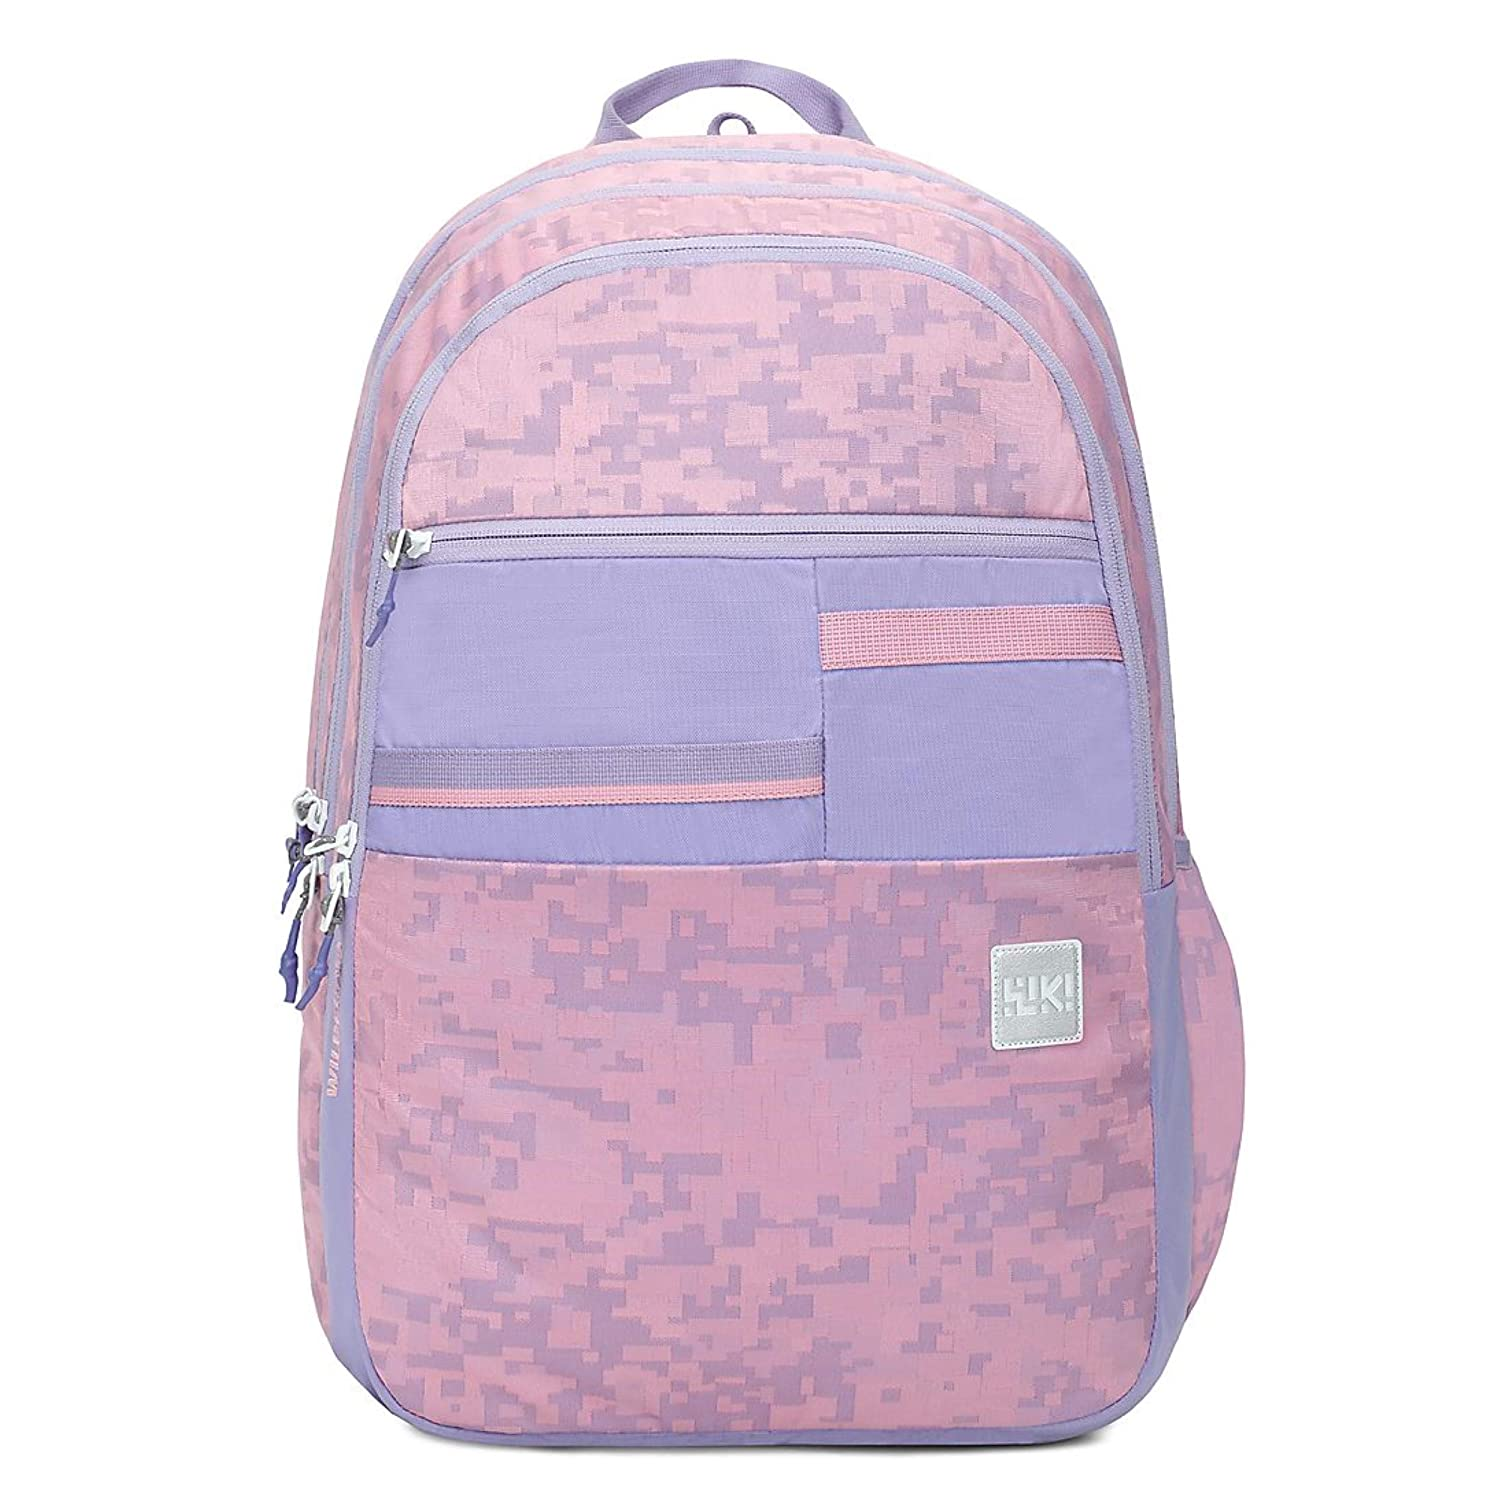 2a5996ae62334 Wildcraft Wiki 6 Jacquard Backpack Pink (11967 Pink): Amazon.in: Bags,  Wallets & Luggage